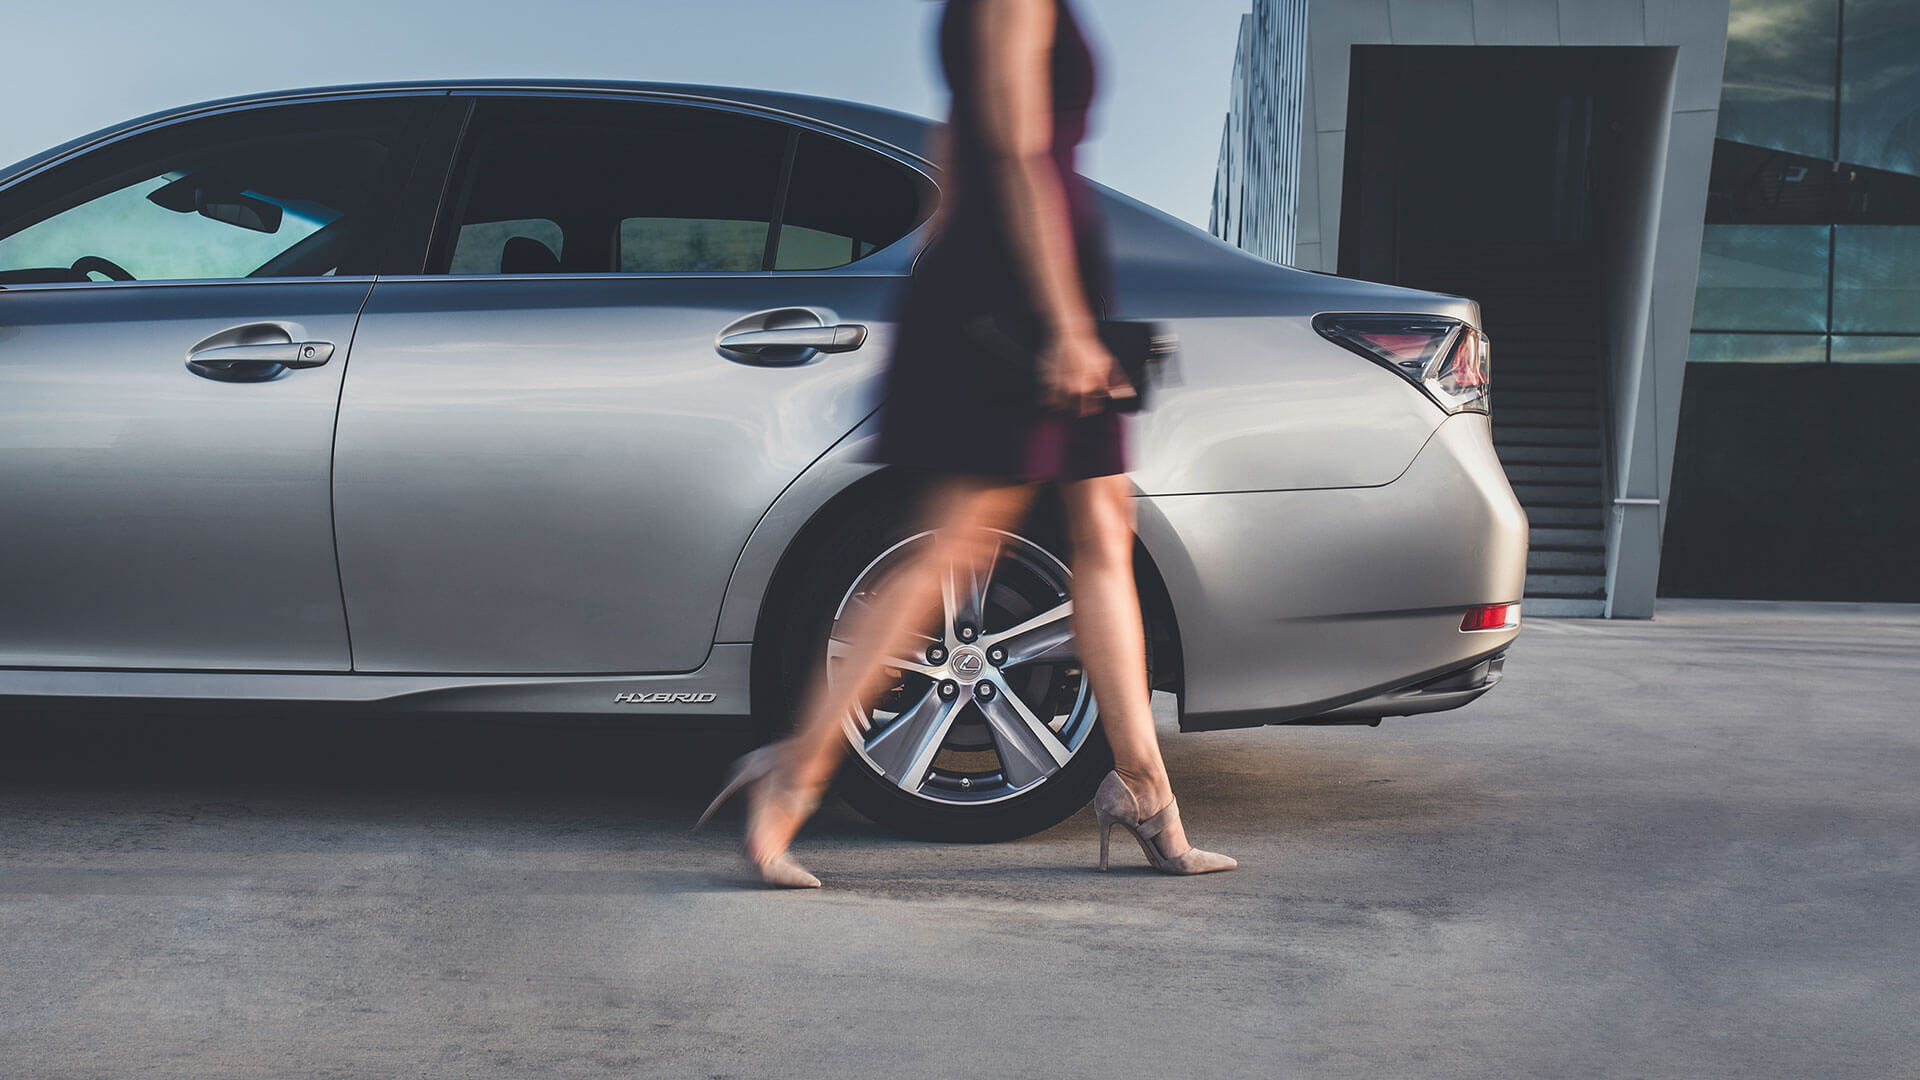 2017 lexus gs gallery 019 lifestyle